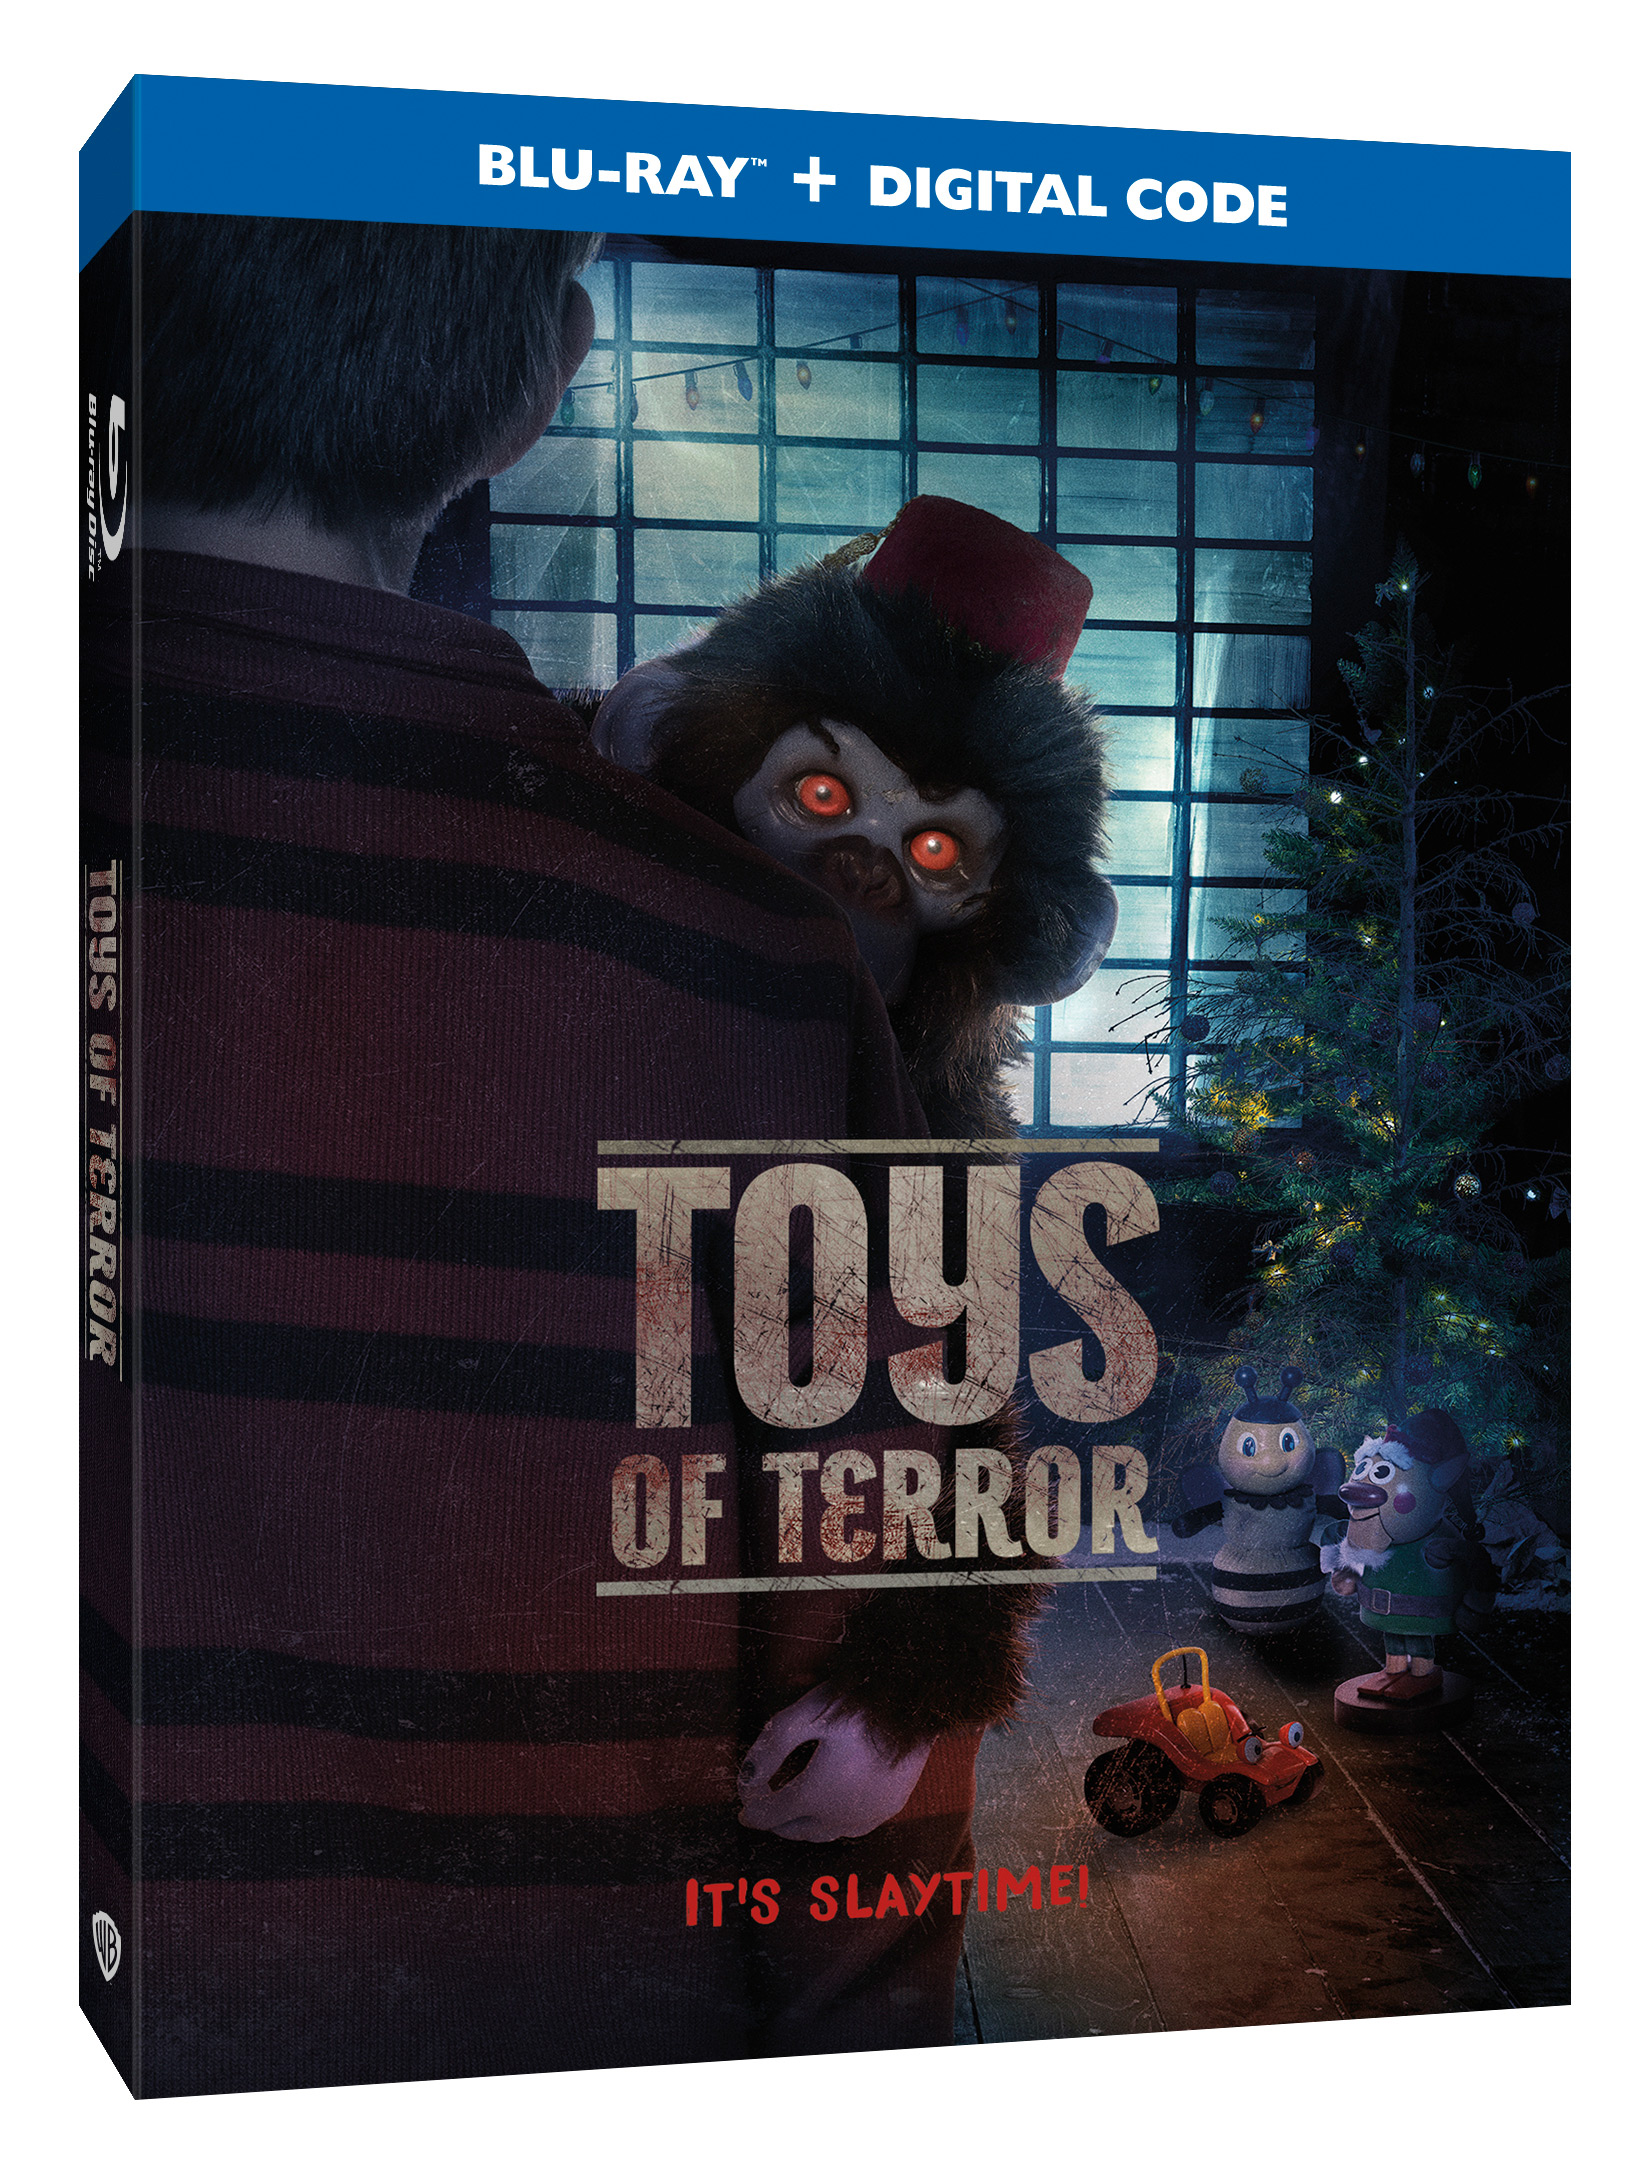 Holiday Horror Film Toys of Terror Available to Own January 19th